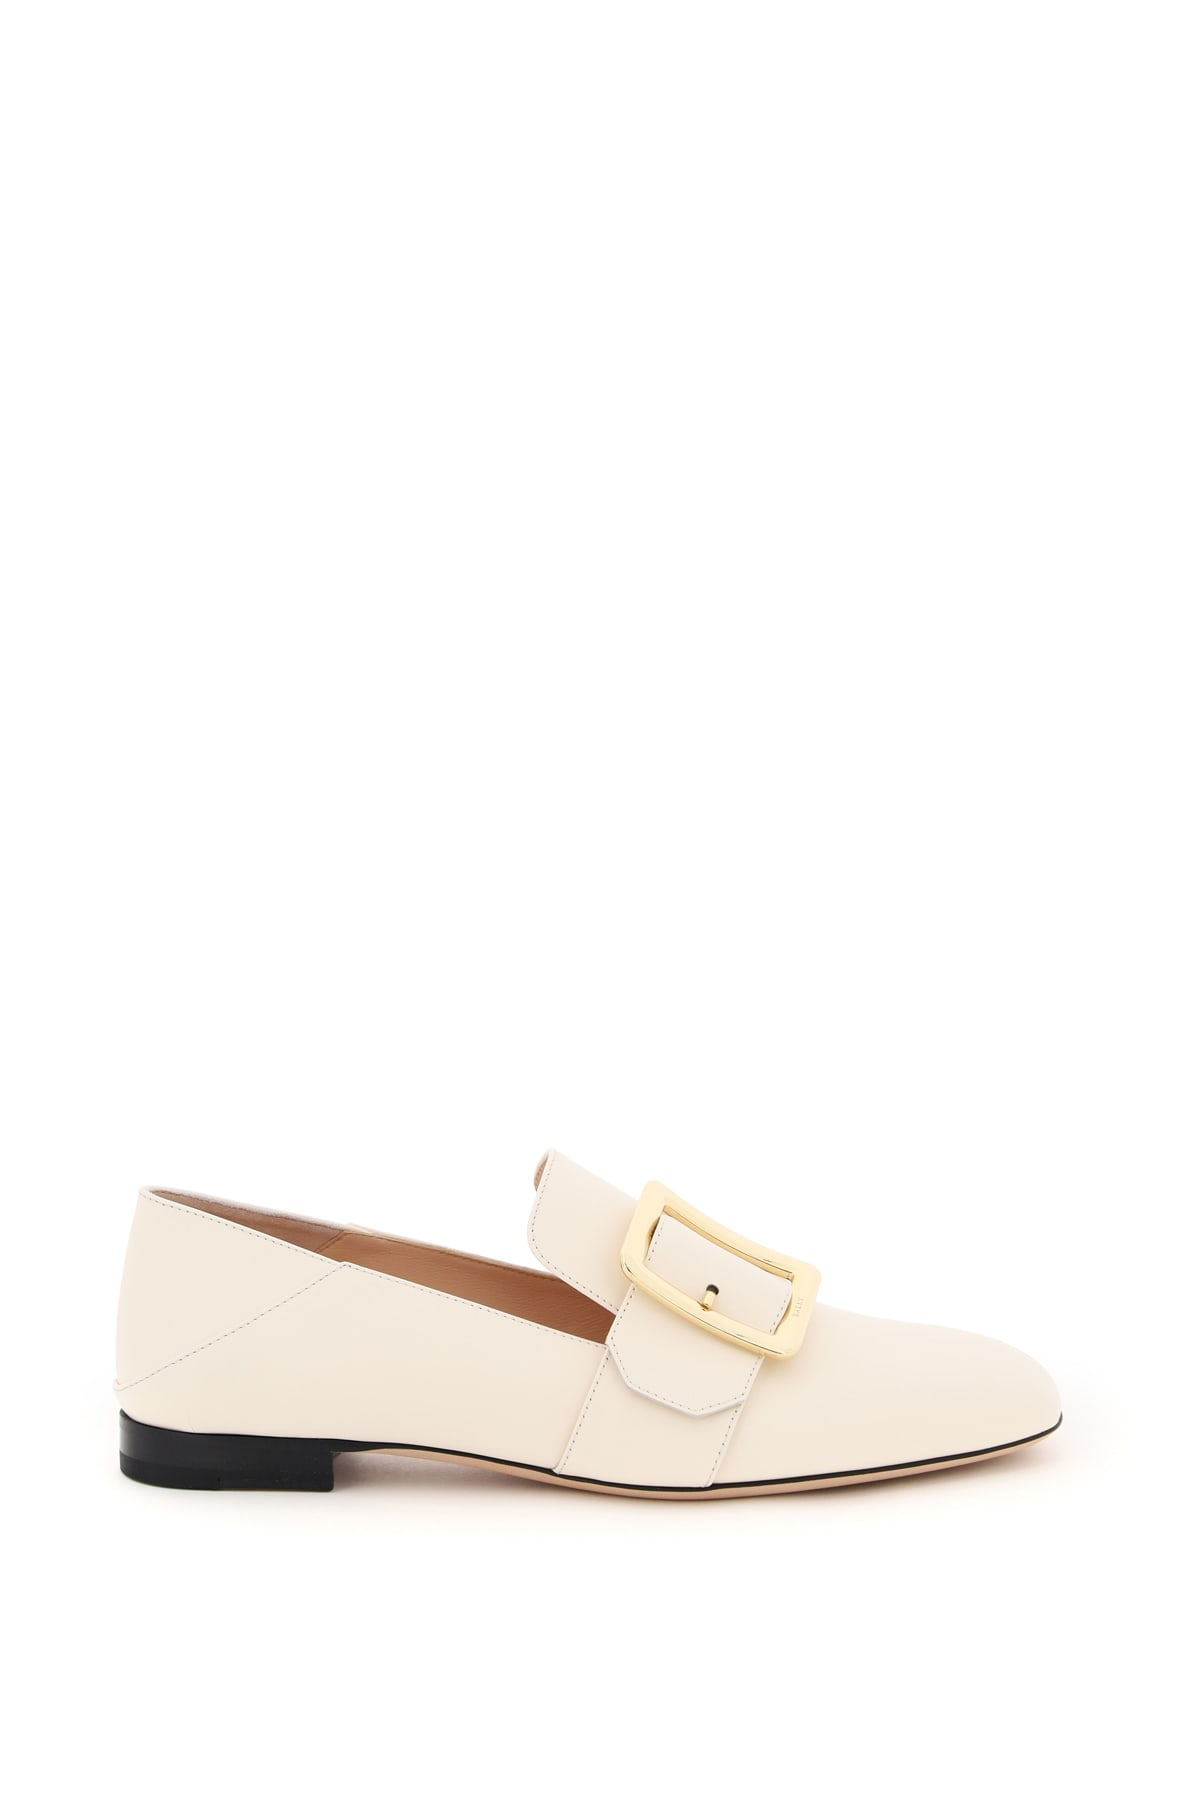 Bally Leathers JANELLE LEATHER LOAFERS